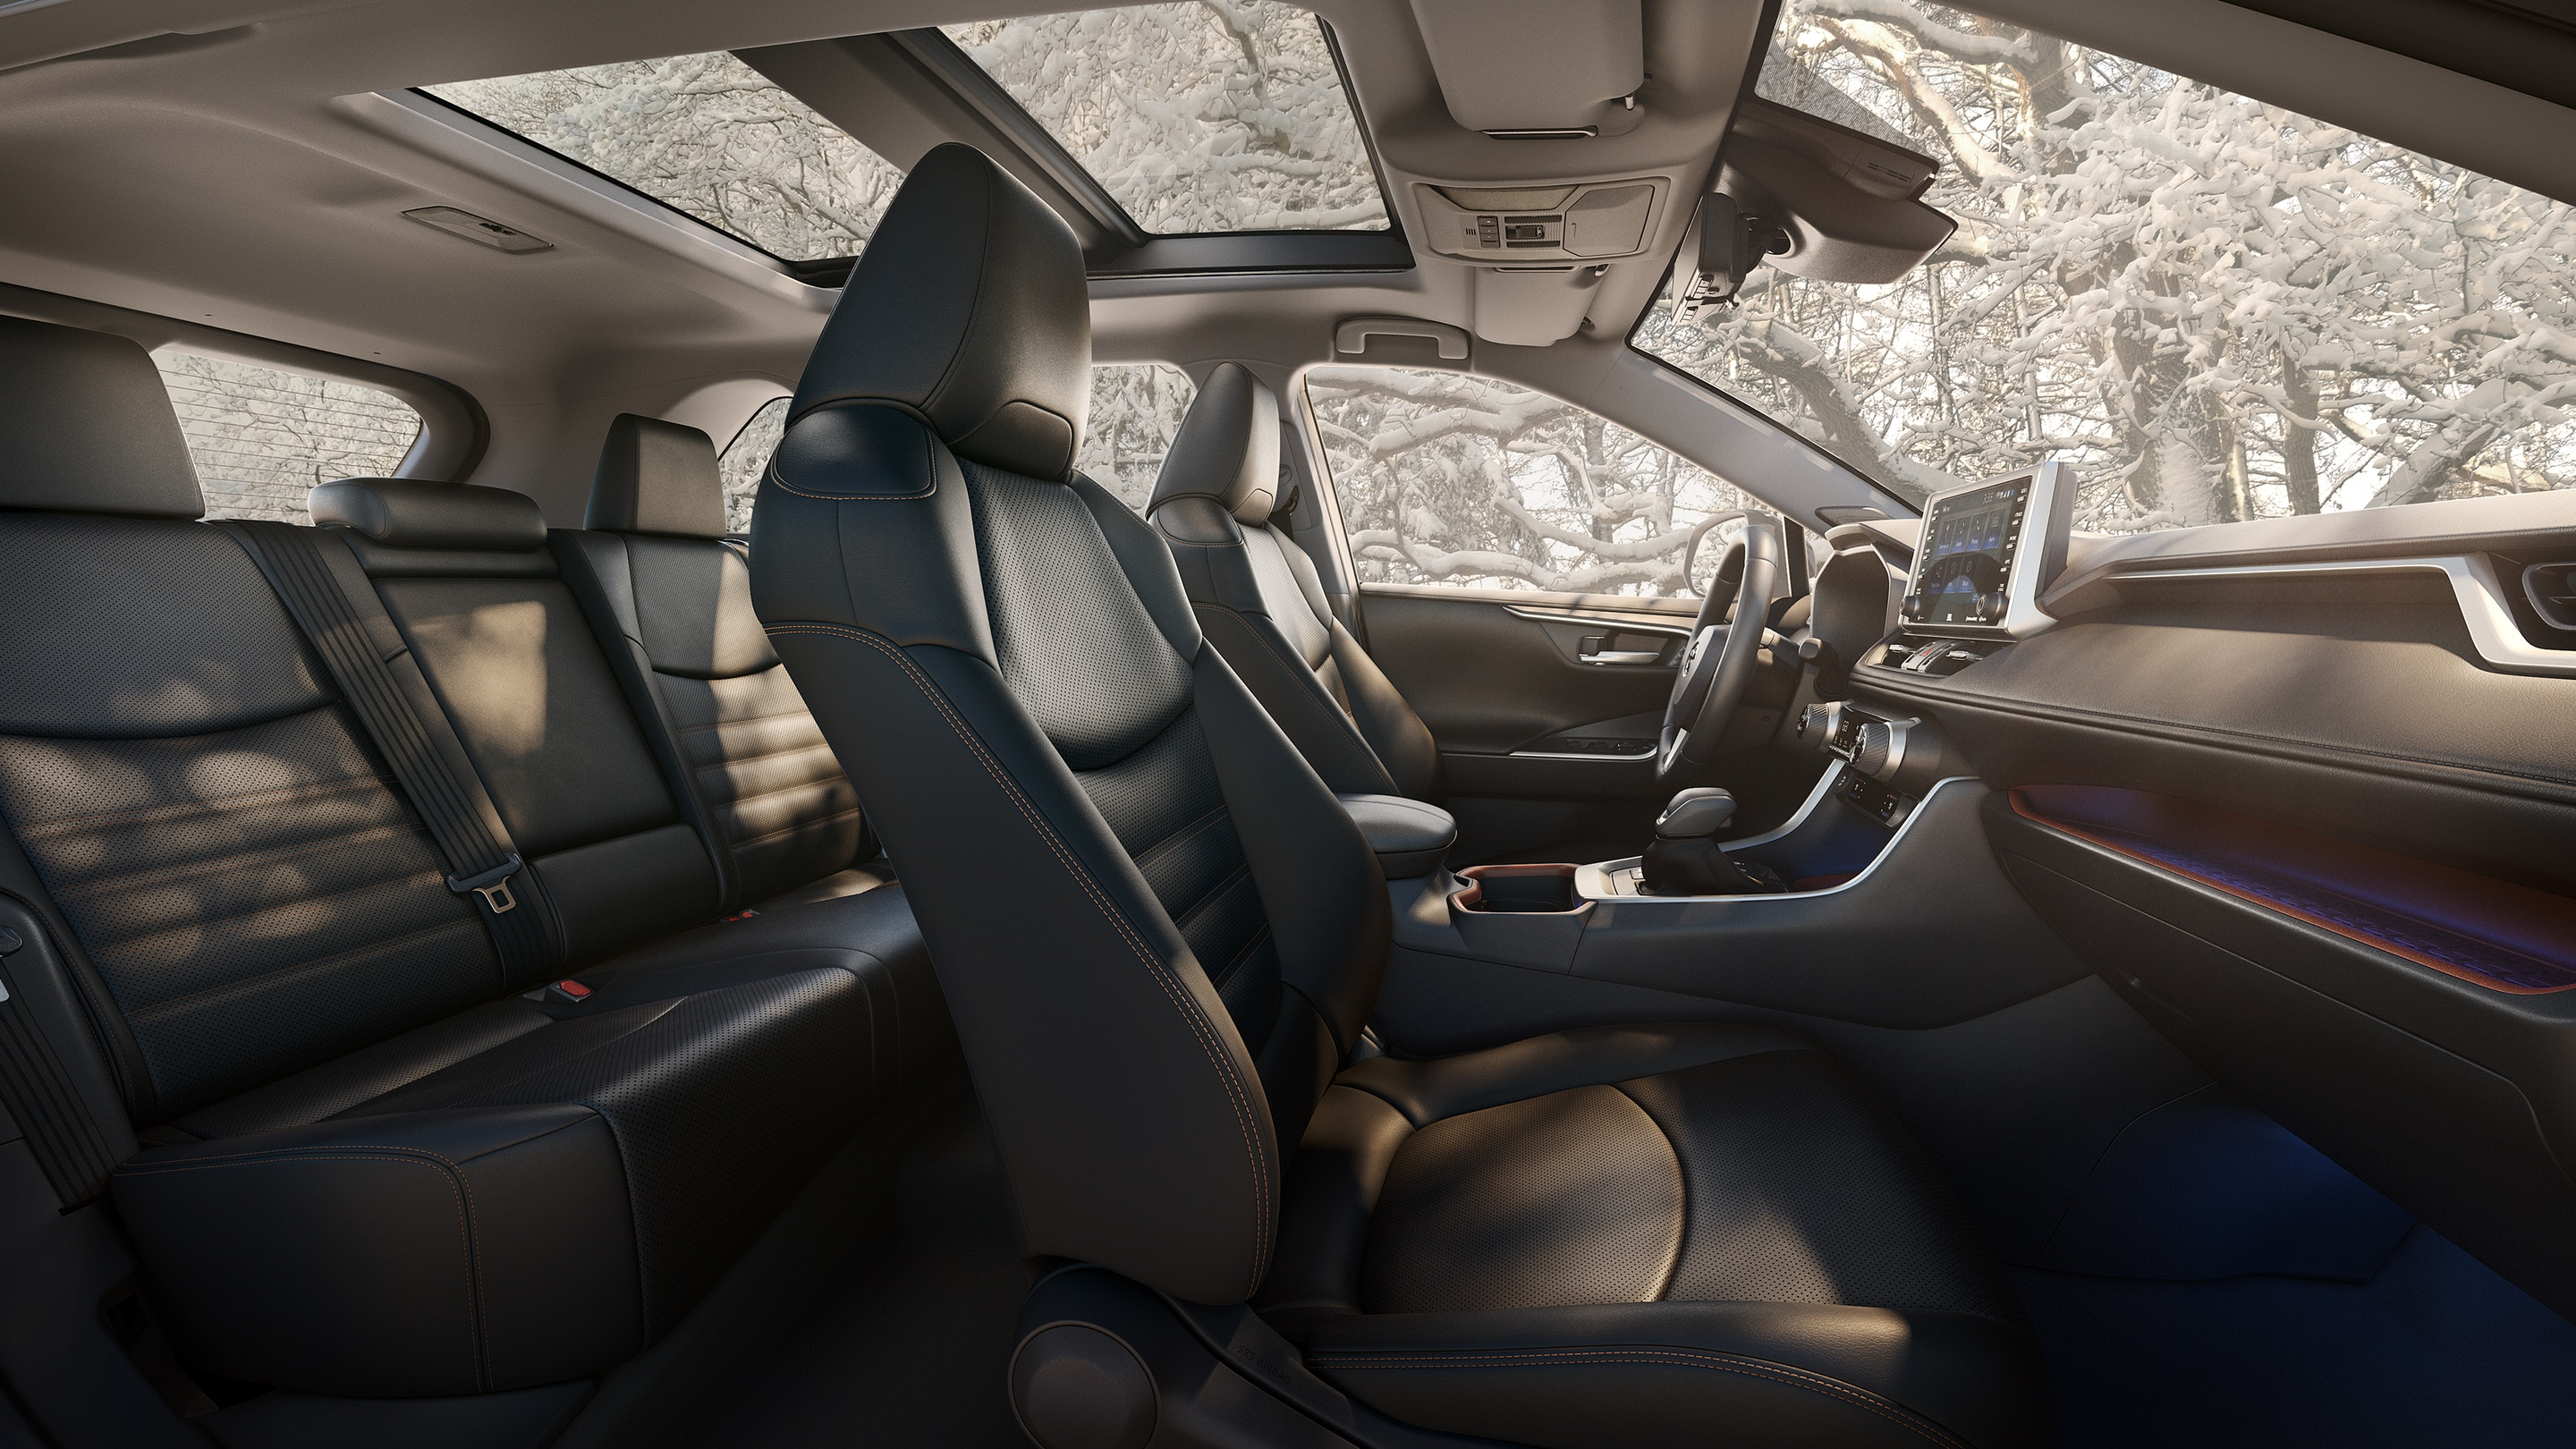 2019 RAV4 Seating